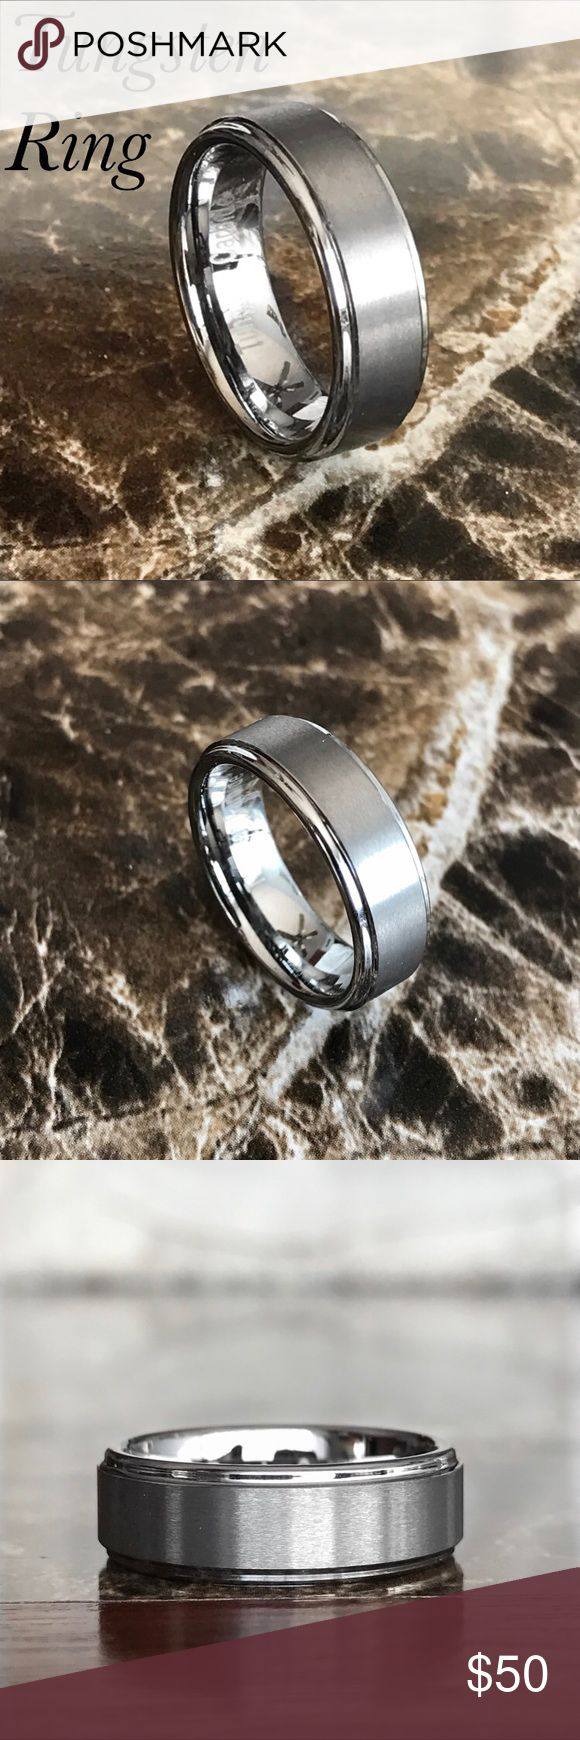 Silver Tungsten Carbide Ring Wedding Band Brand new No trades  Sizes available 7/7.5/9/9.5/11.5/12.5  Material: Tungsten Carbide Band Width: 8MM Fit: Comfort Finish: Brushed Color: Silver  Tungsten is two times tougher than steel and twice the density of steel. It will not rust, tarnish or turn your finger green.                                              ~Ring box included ~ Accessories Jewelry